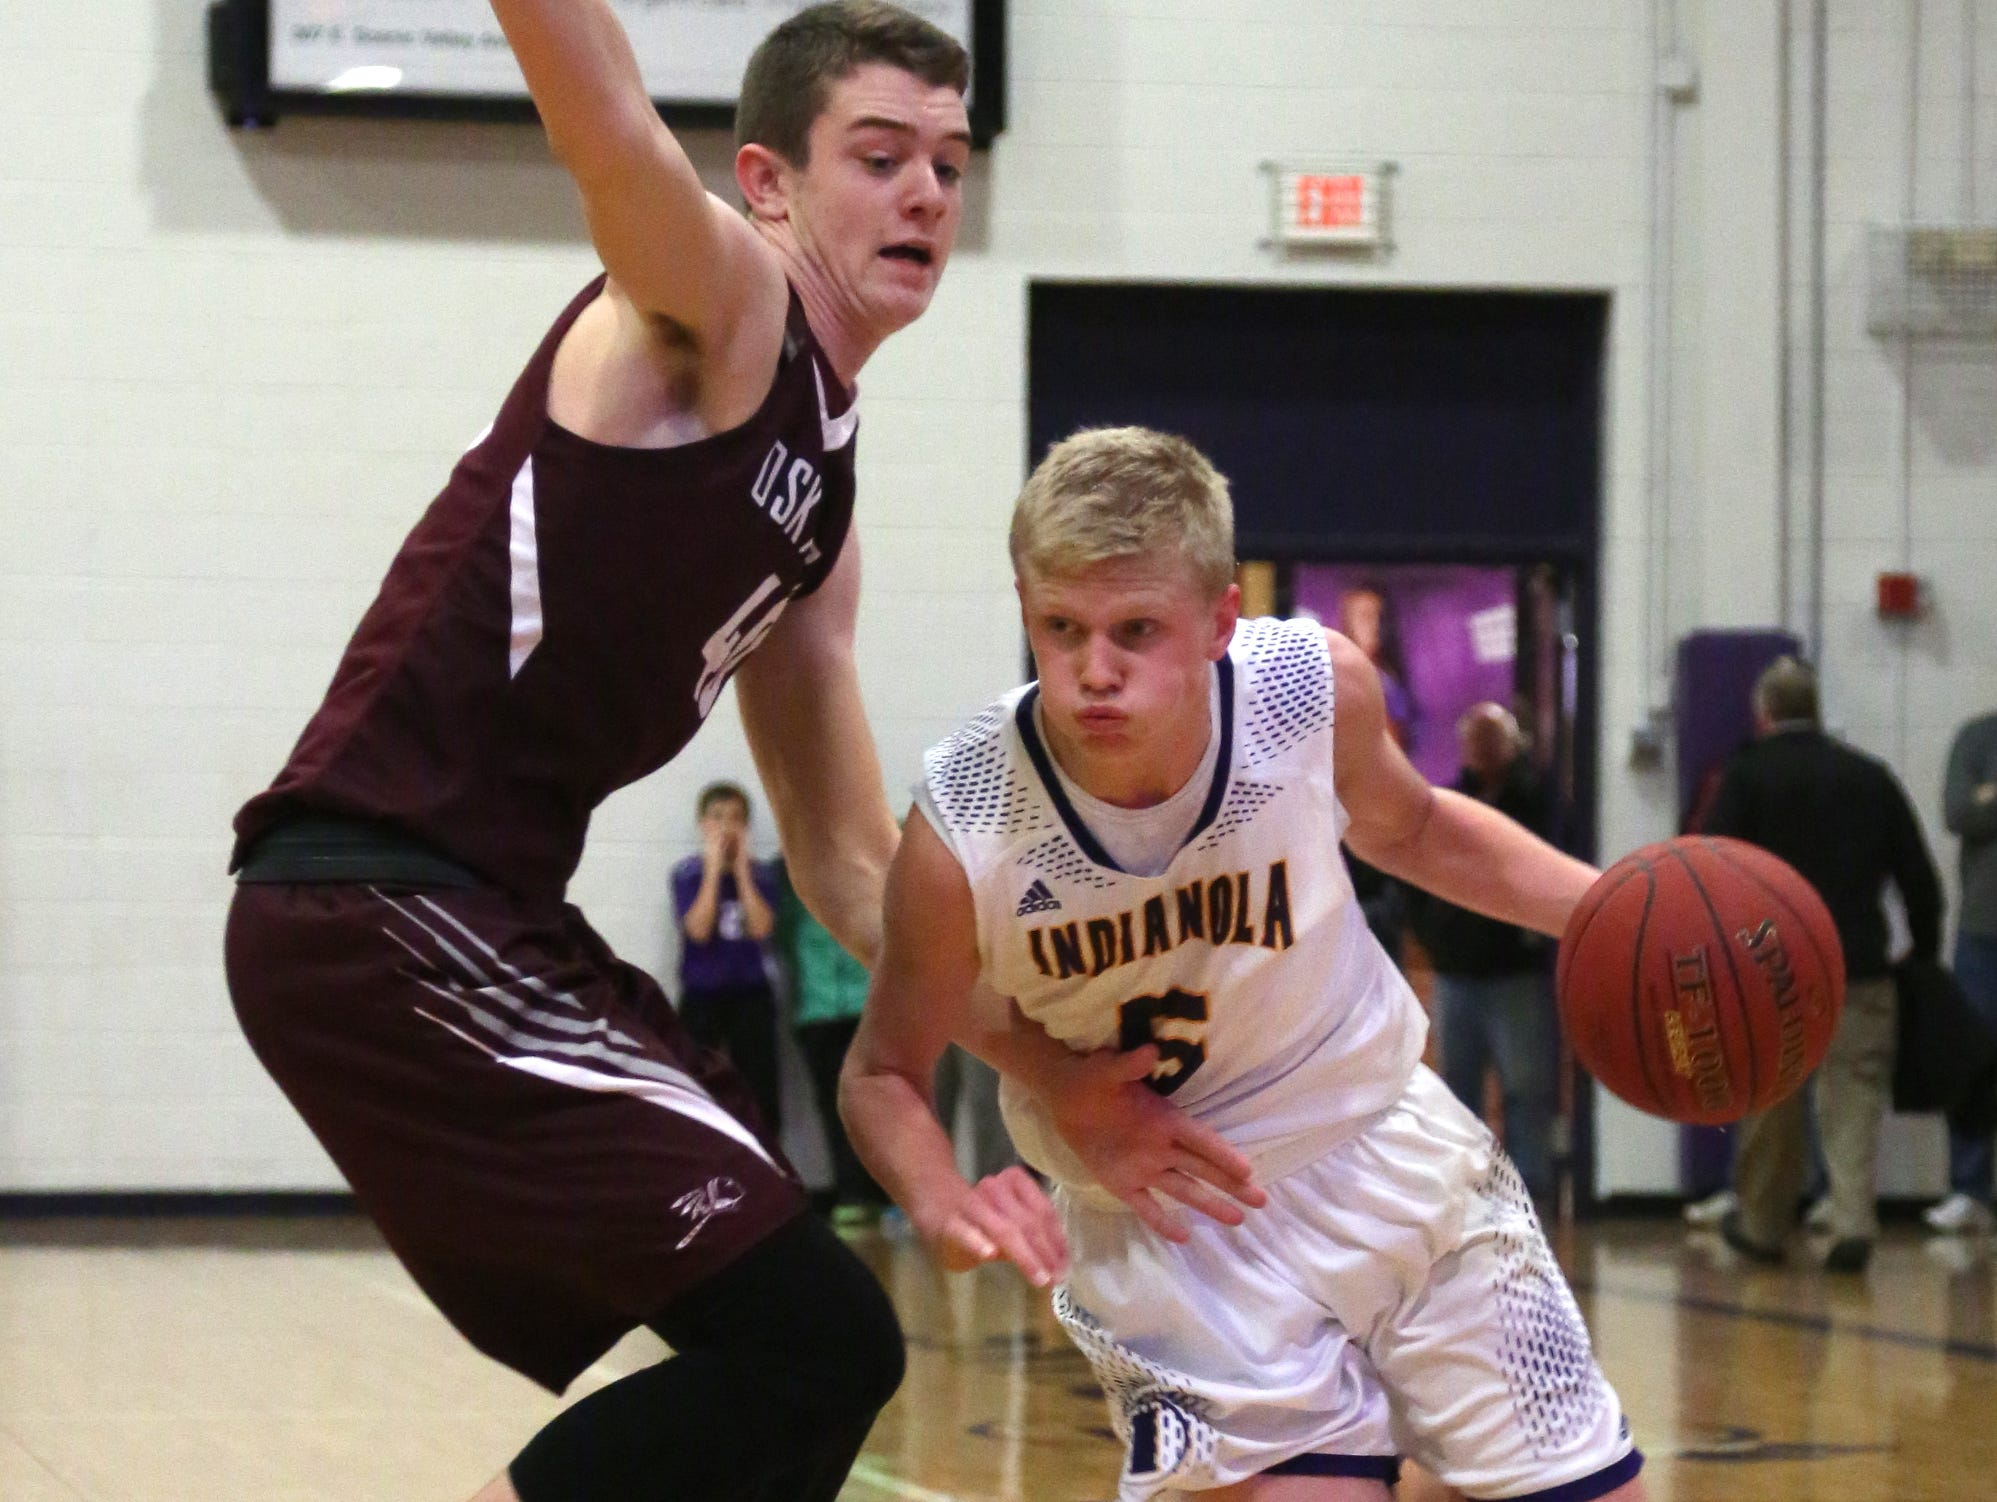 Indianola sophomore Quinn Vesey tries to get around Oskaloosa sophomore Cole Henry. Oskaloosa edged Indianola 65-60 in a Jan. 13 game in Indianola.